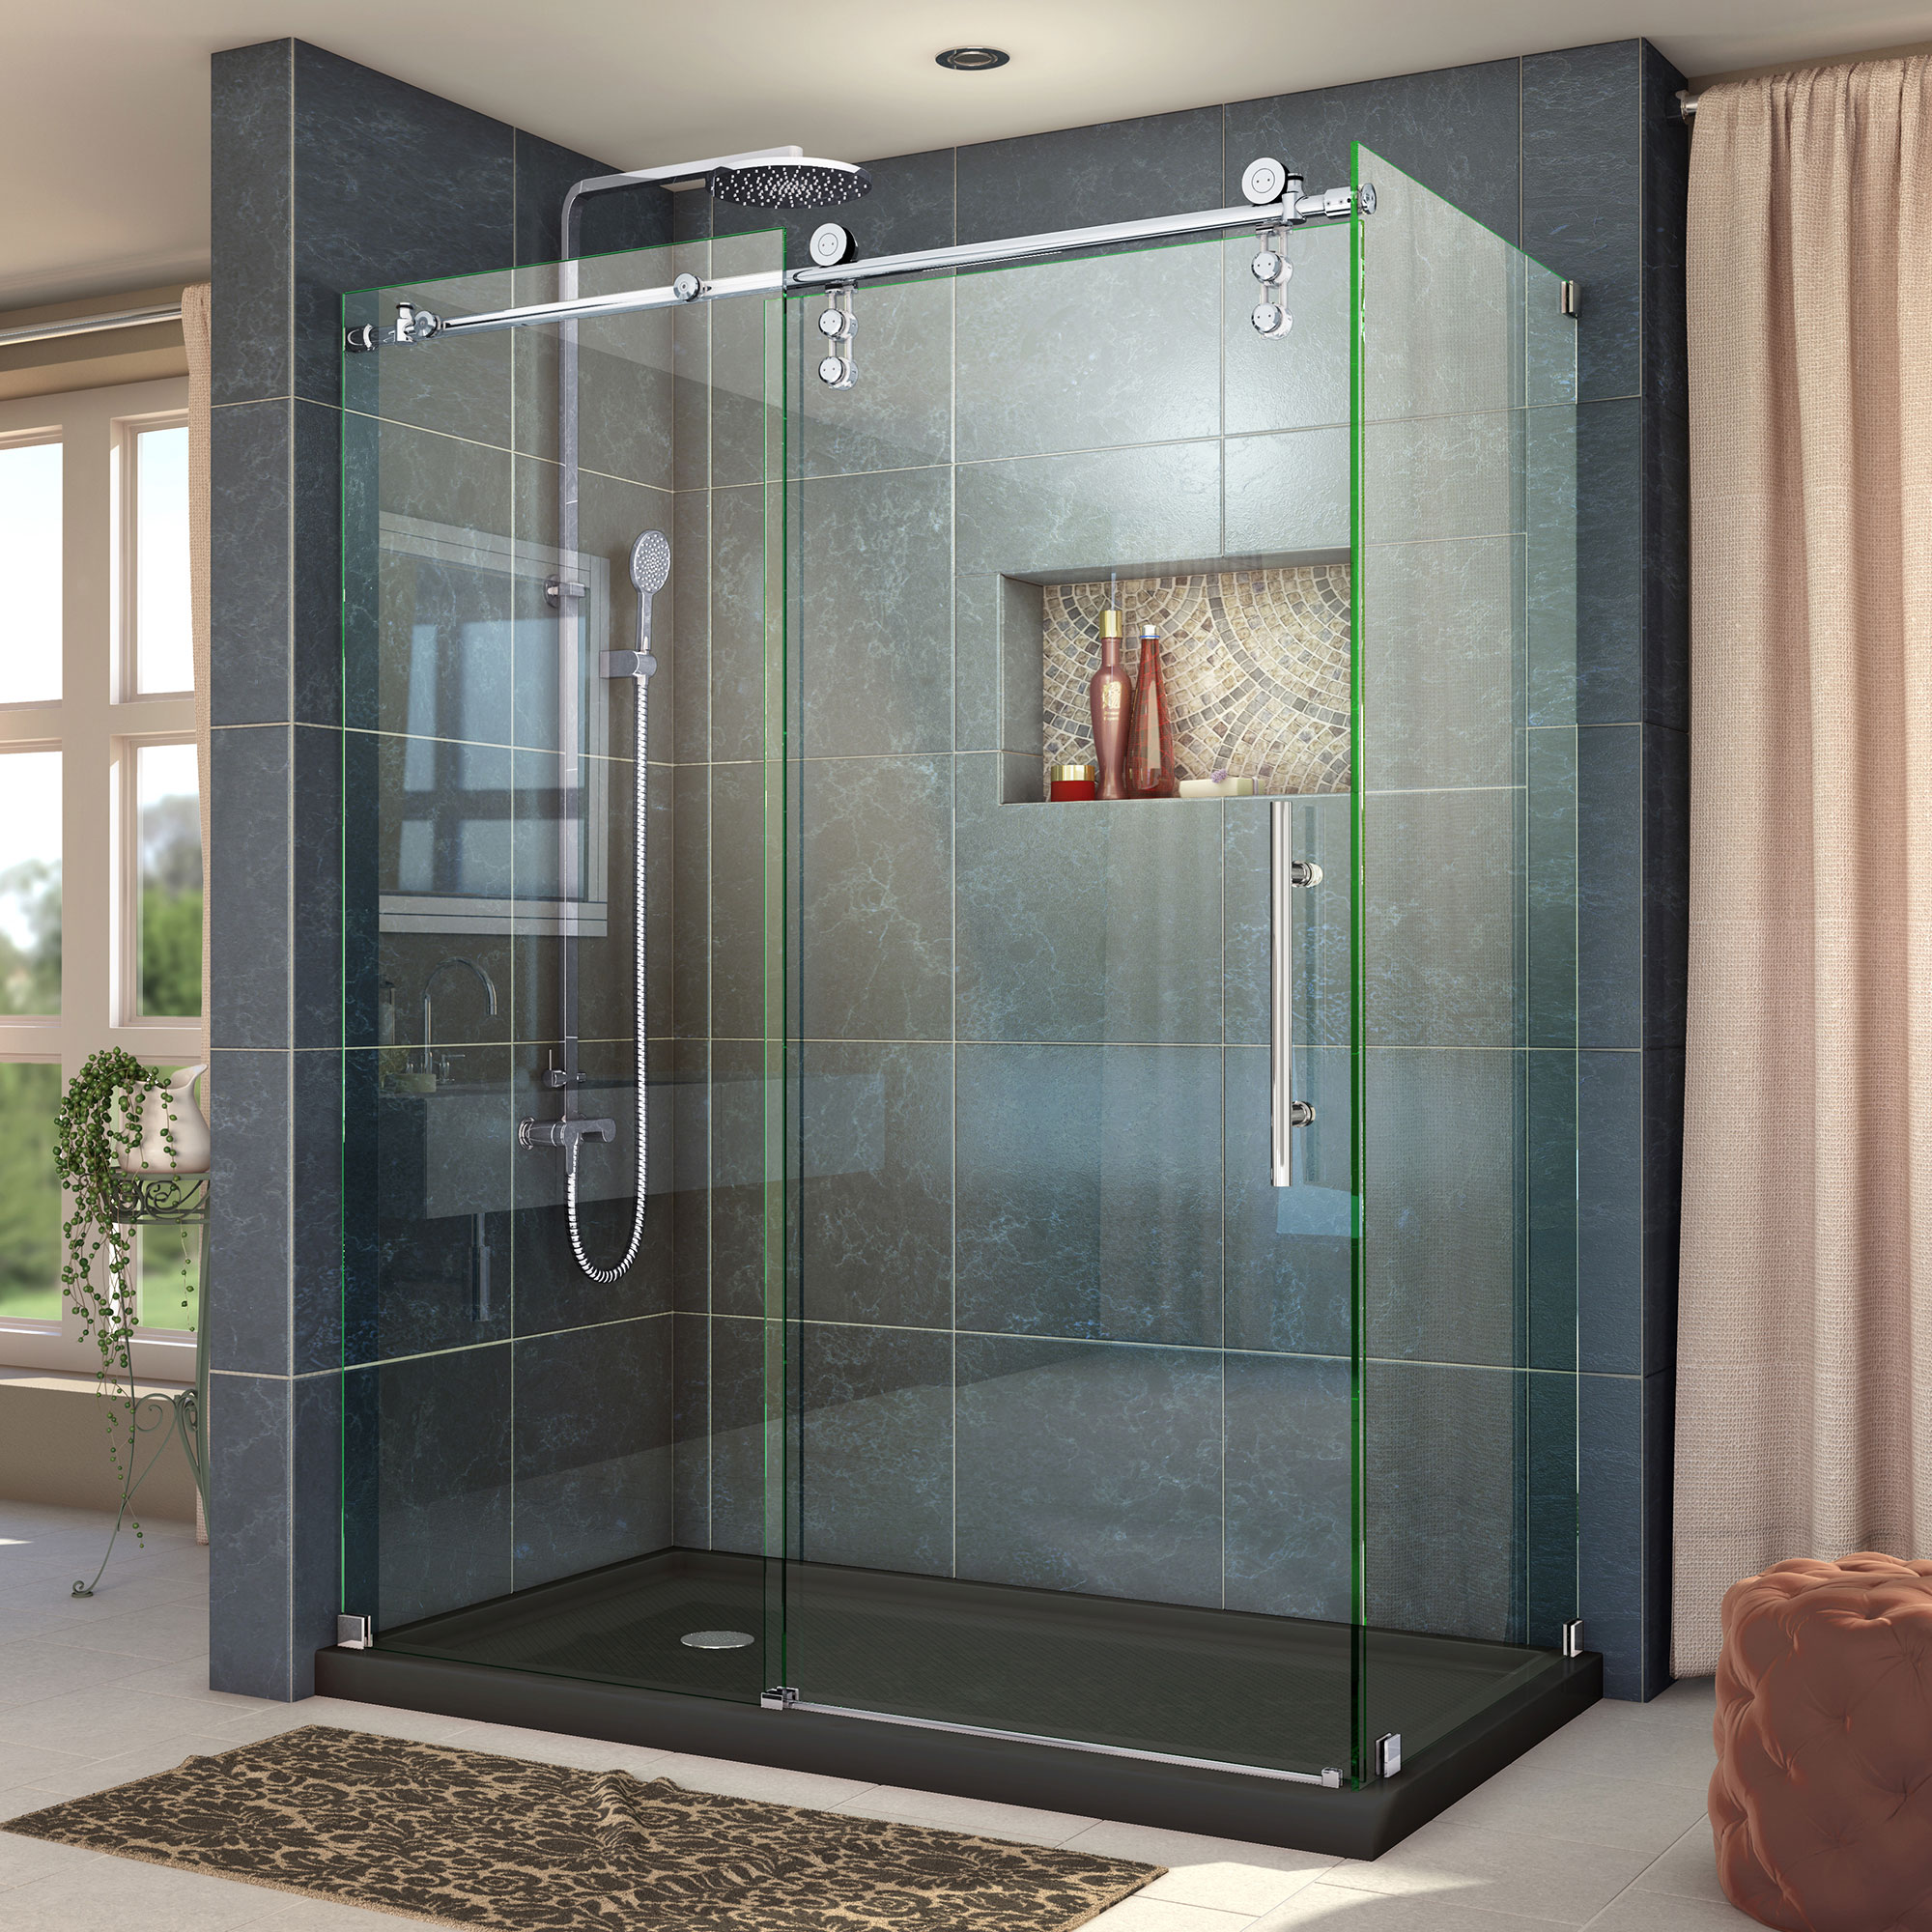 "Enigma-Z 34-1/2"" x 60-3/8"" Fully Frameless Sliding Shower Enclosure, Clear 3/8"" Glass, Brushed Stainless Steel"